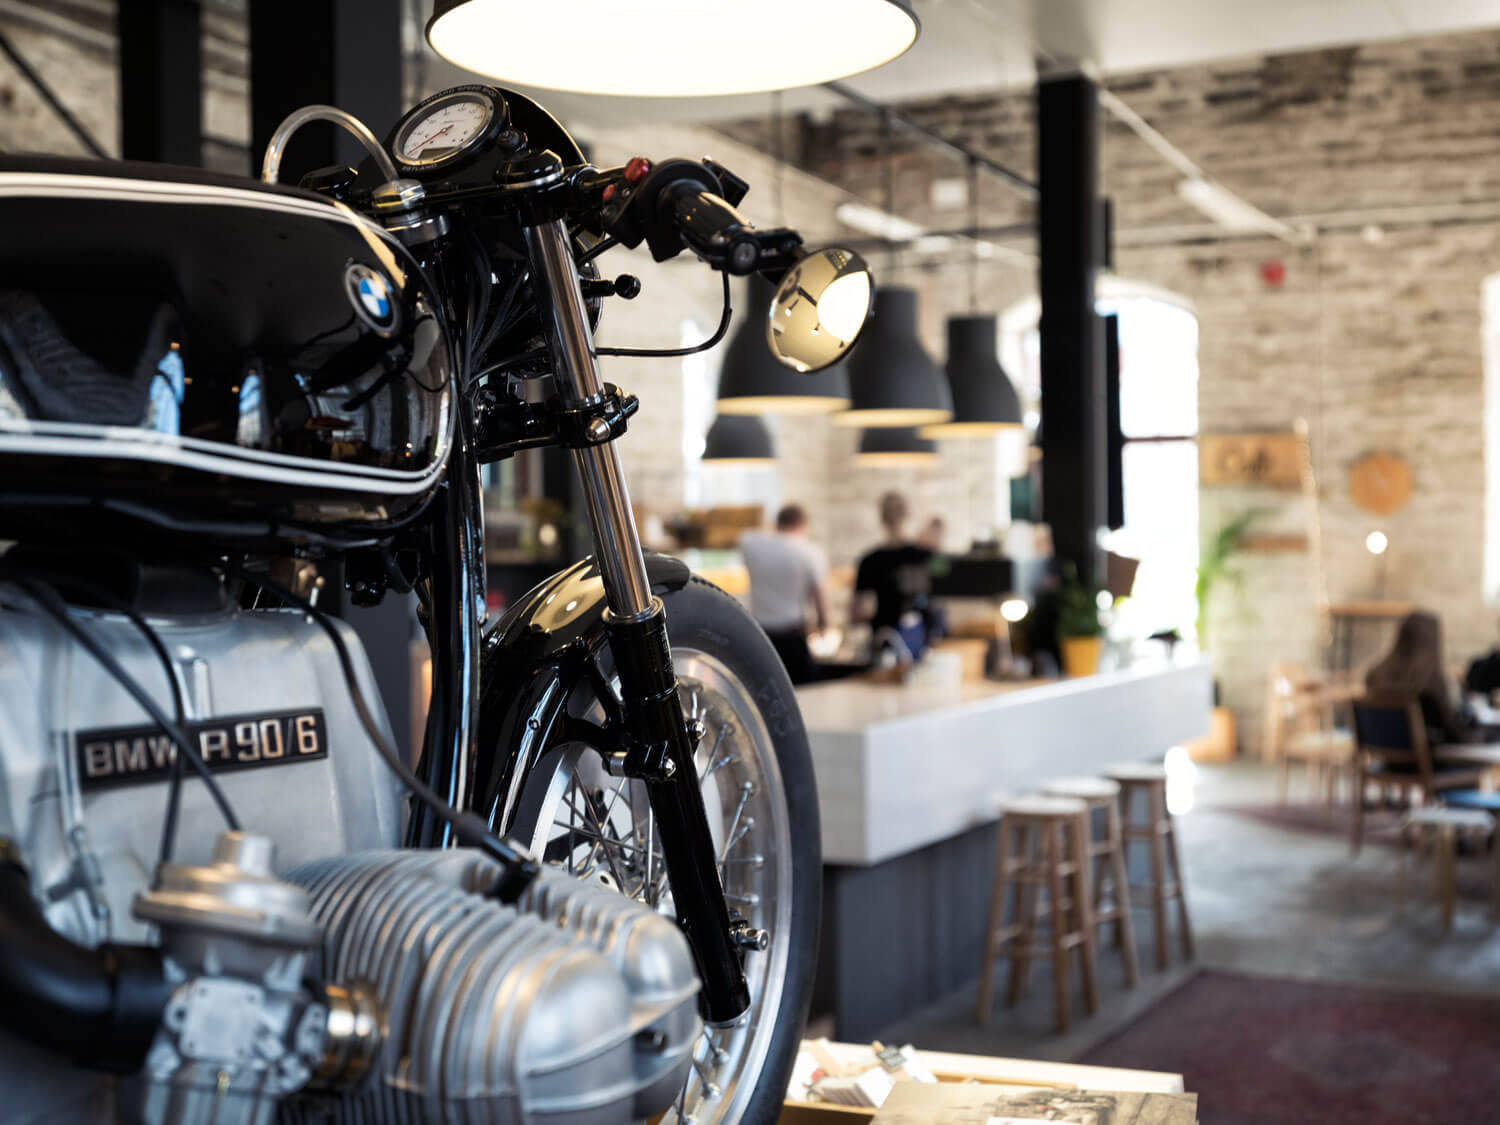 Renard Speed Shop BMW R90 Cafe Racer Motorcycle in shop